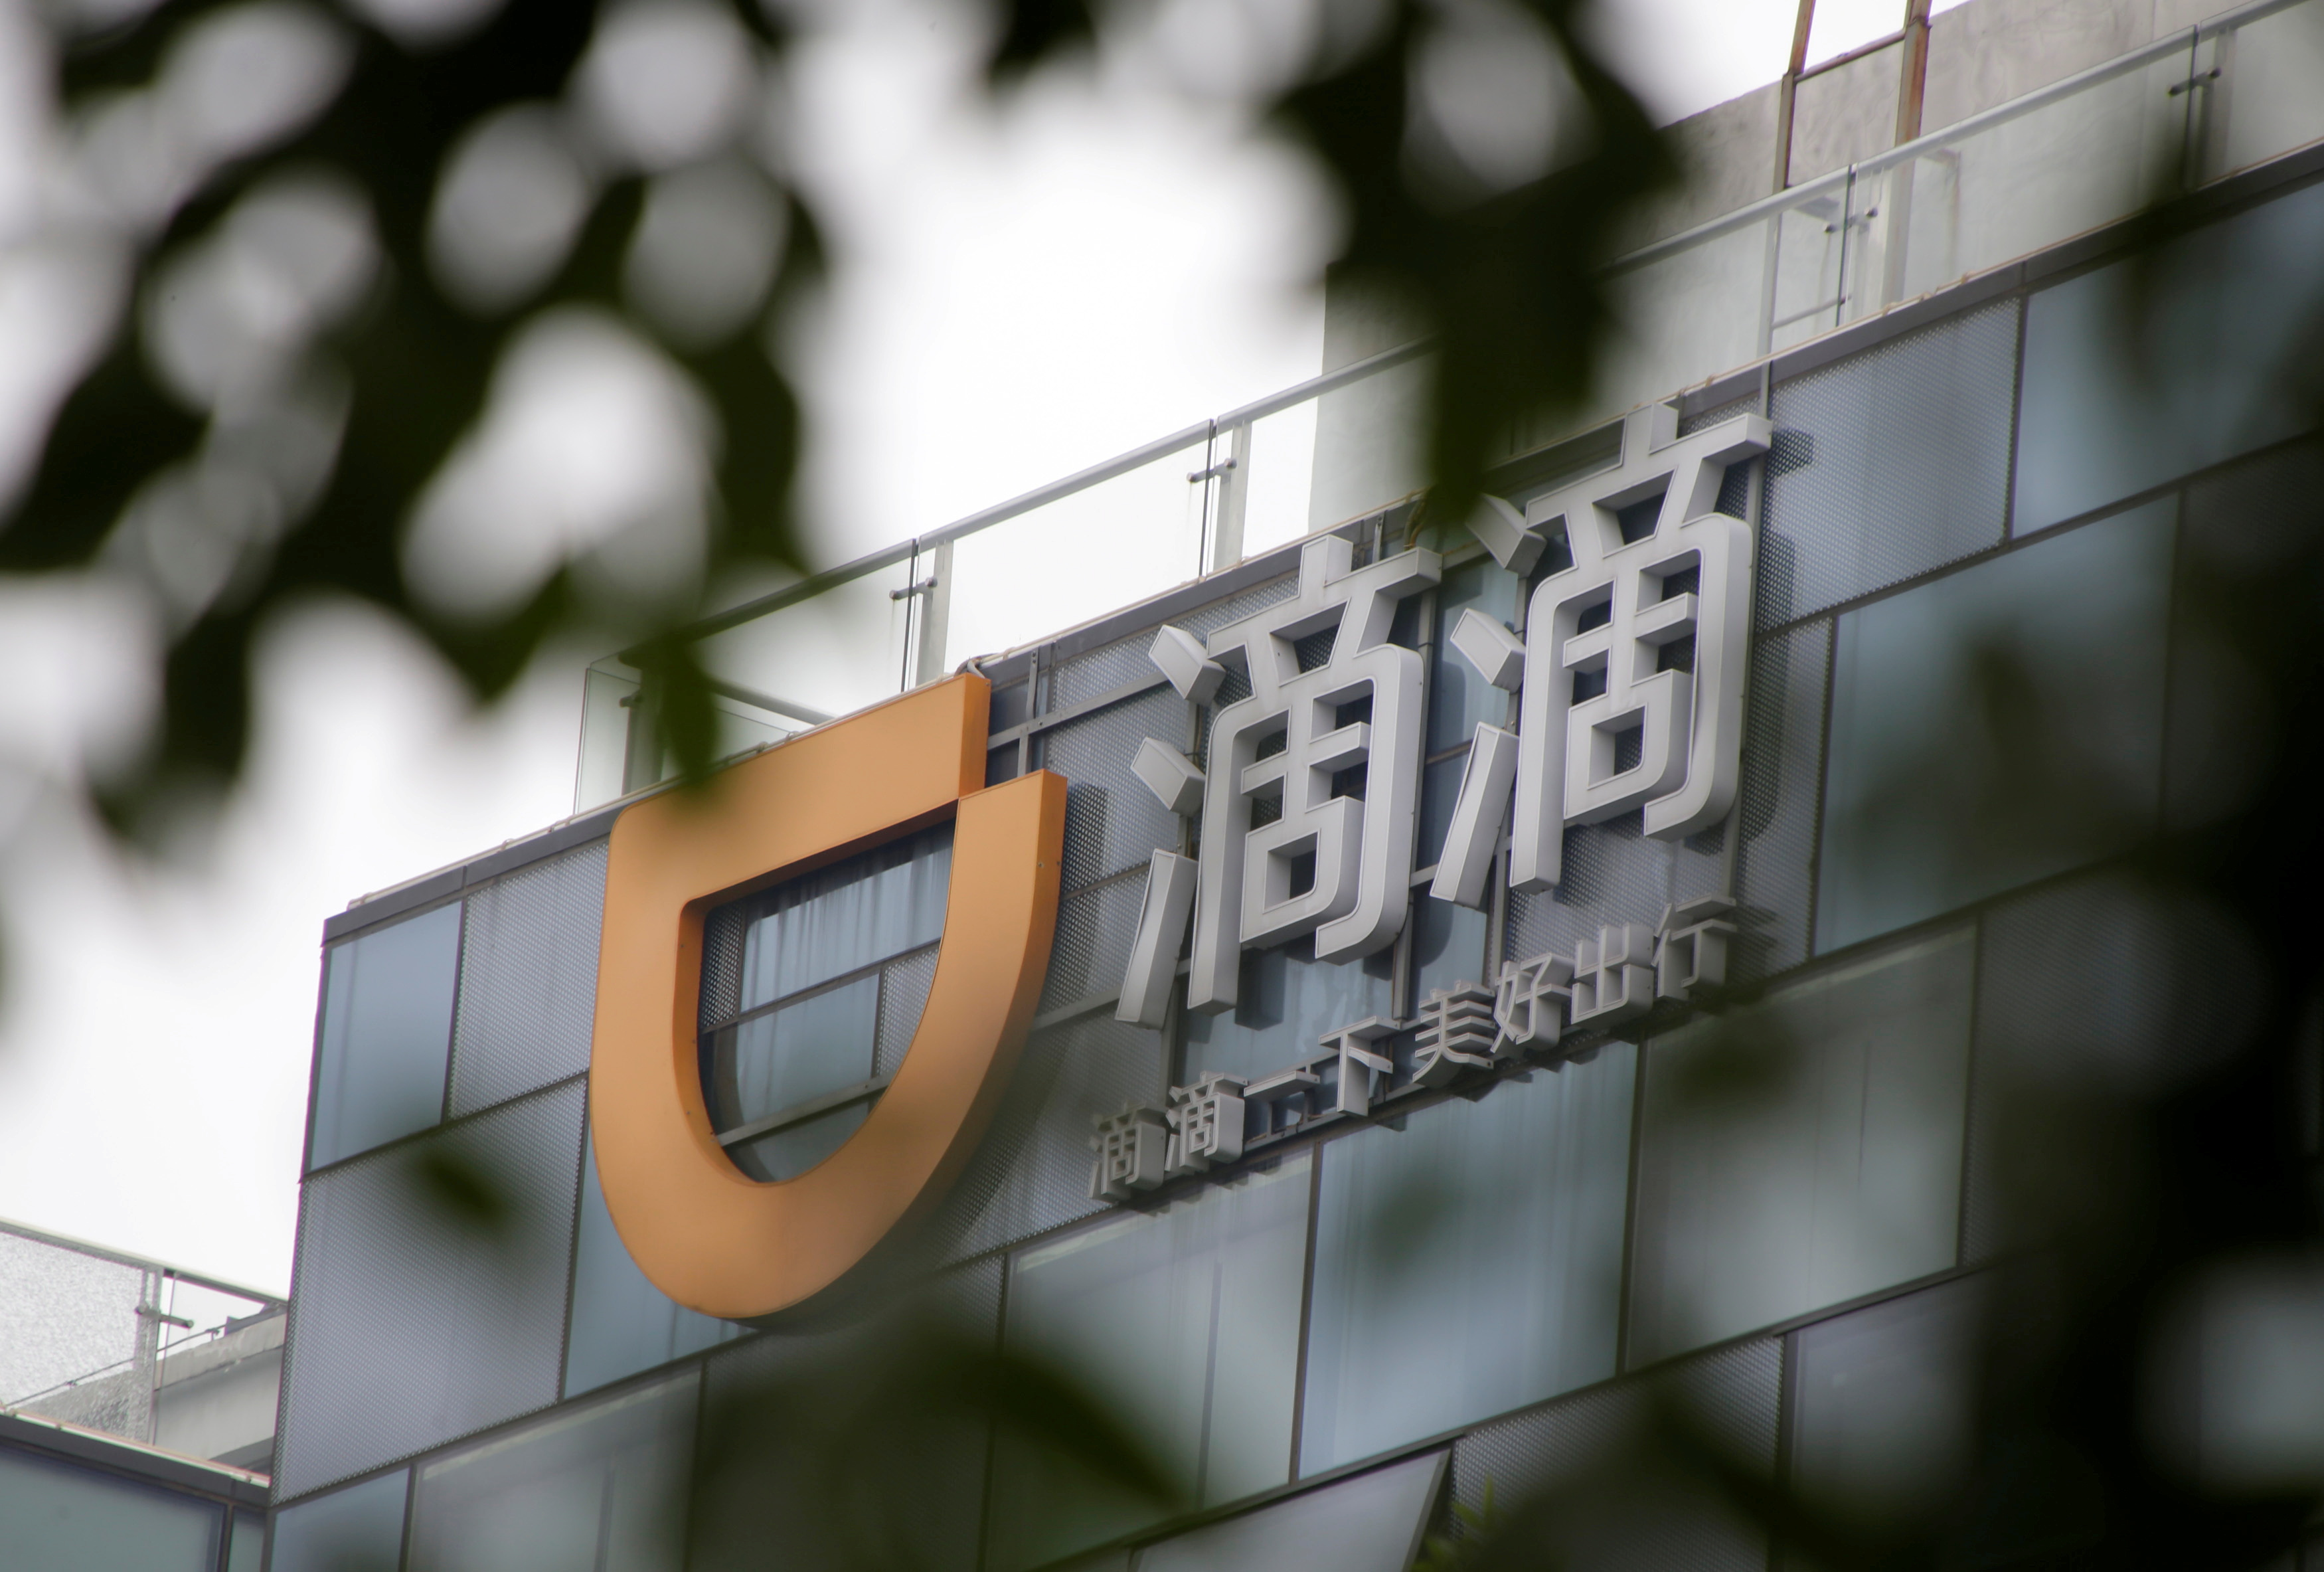 Logo of Didi Chuxing is seen at its headquarters building in Beijing, China August 28, 2018. REUTERS/Jason Lee/File Photo